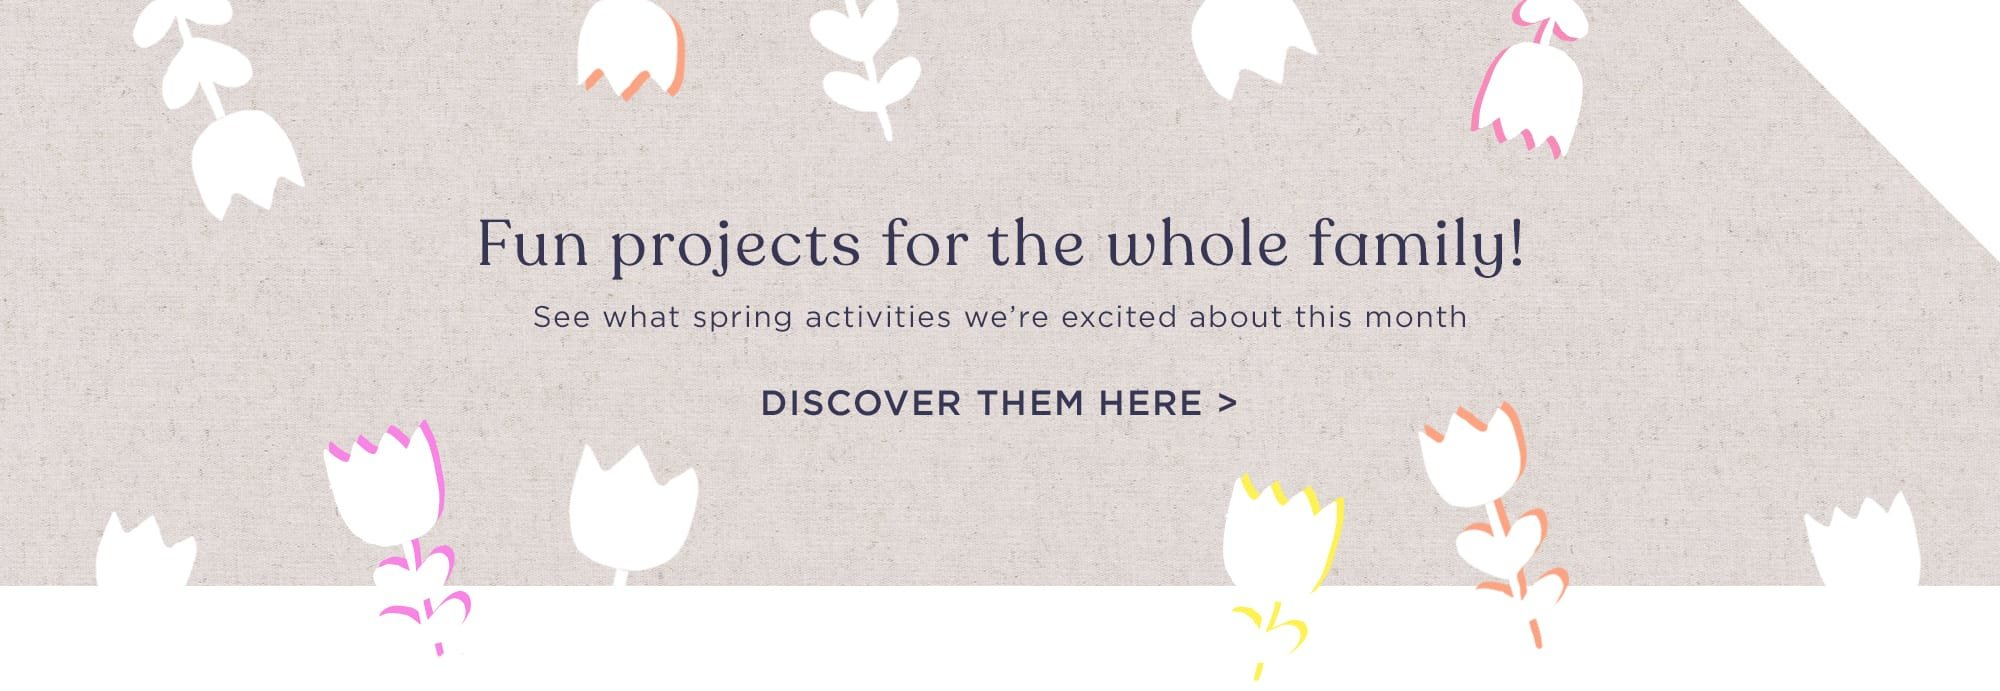 Spring activities to discover